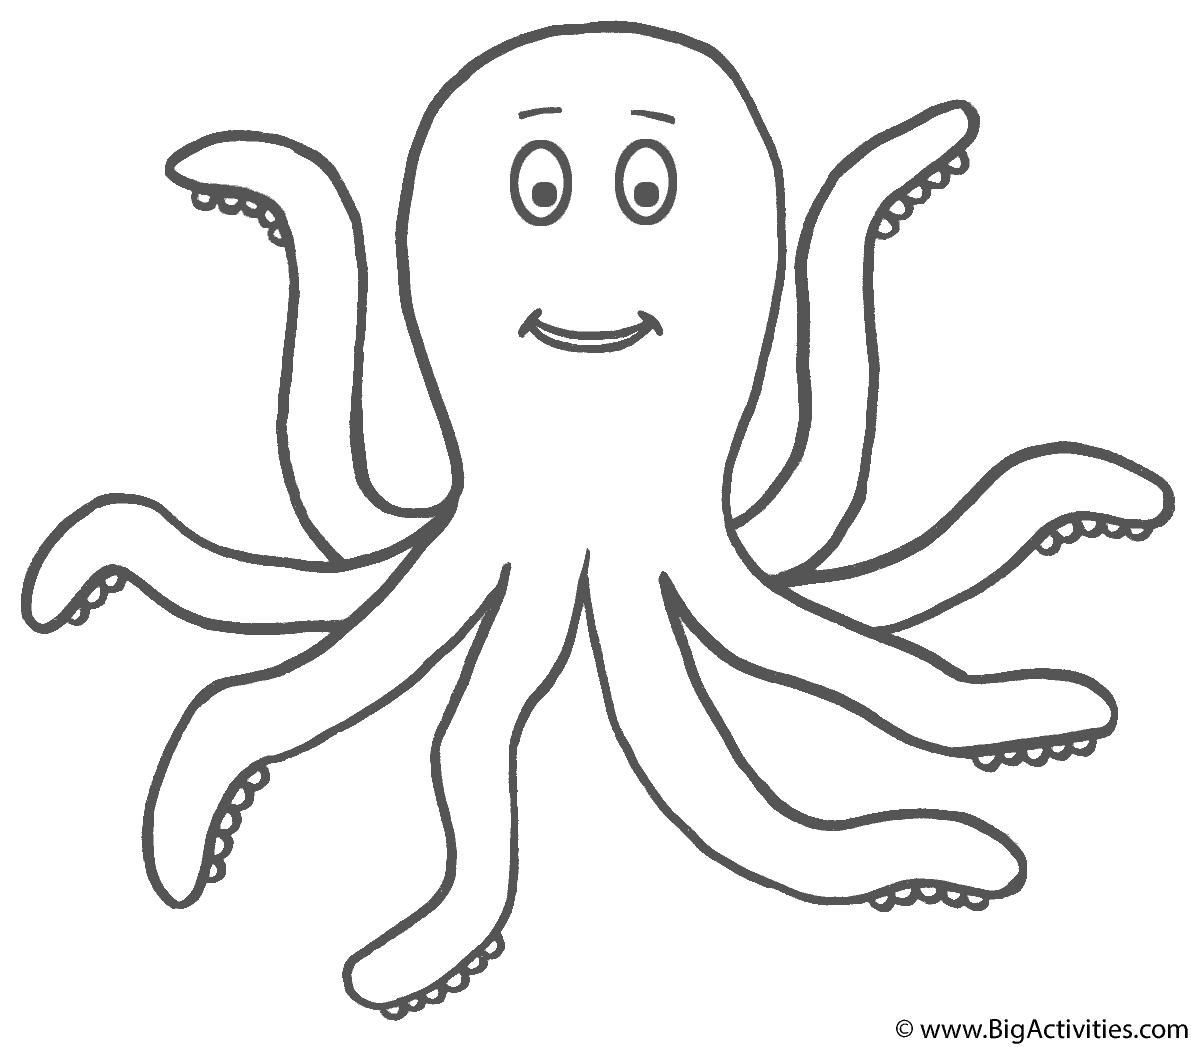 octopus coloring sheet dr octopus coloring pages printable coloring home sheet octopus coloring